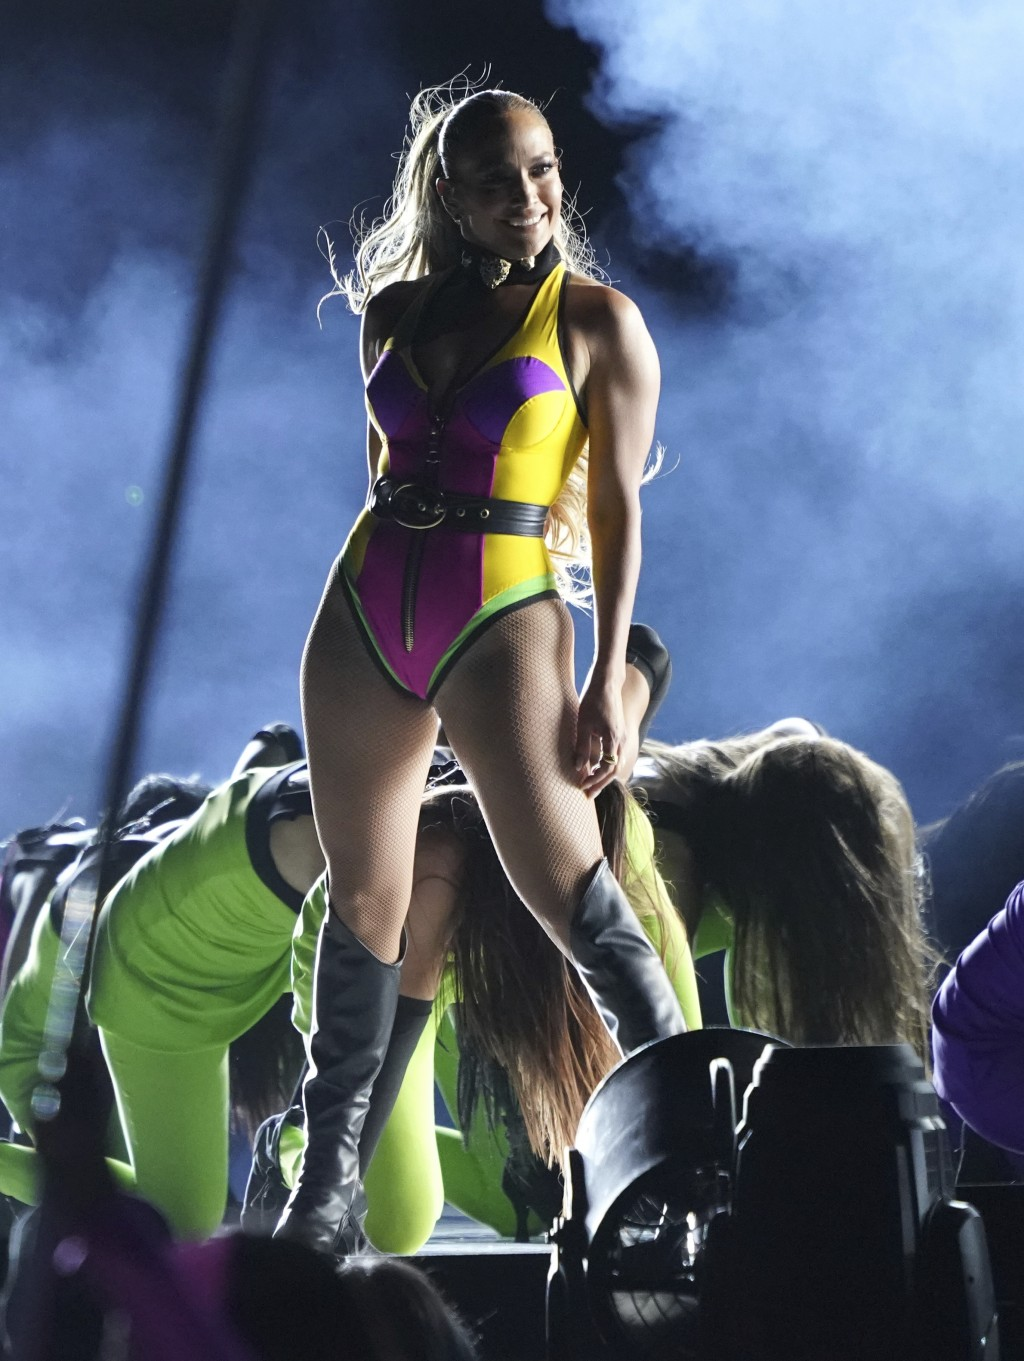 """Jennifer Lopez performs at """"Vax Live: The Concert to Reunite the World"""" on Sunday, May 2, 2021, at SoFi Stadium in Inglewood, Calif. (Photo by Jordan ..."""